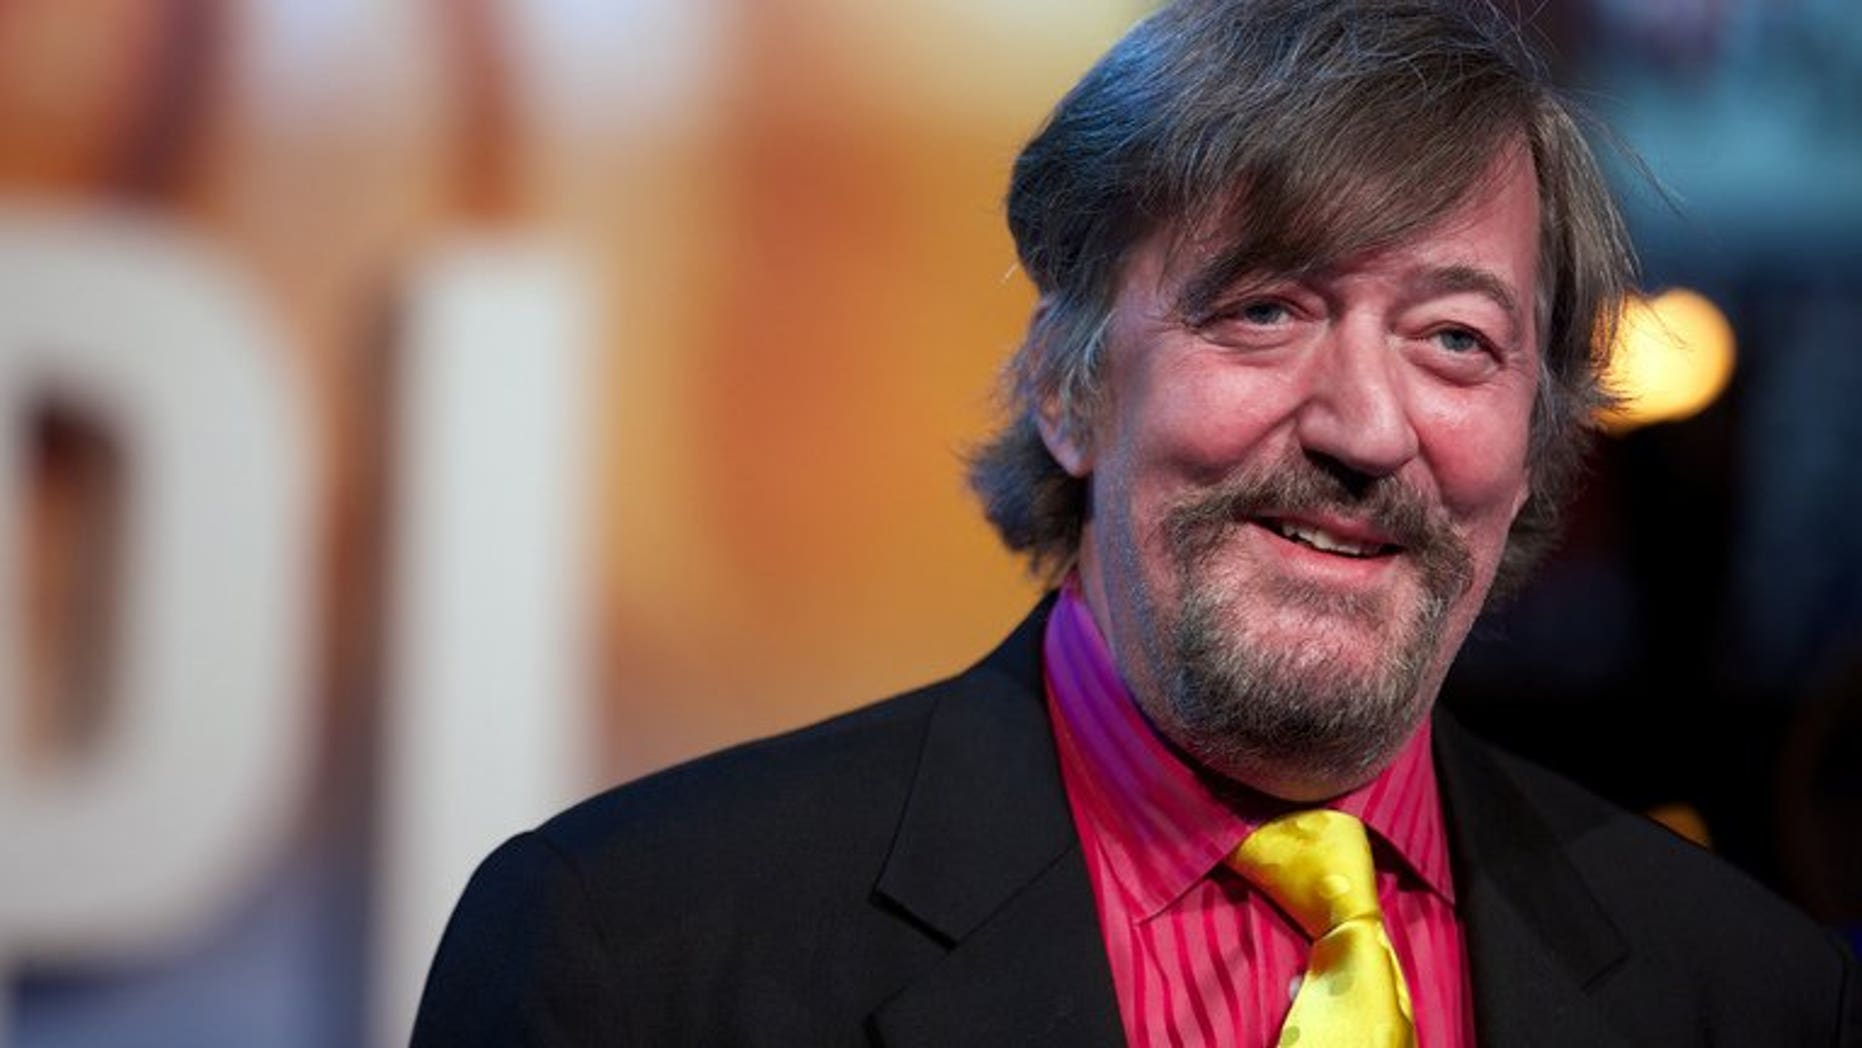 Stephen Fry seen in central London on December 3, 2012. One of the joys of having six million followers on Twitter is never having to talk to journalists, Fry said in a foul-mouthed rant against a hack who questioned whether he wrote his own Tweets.